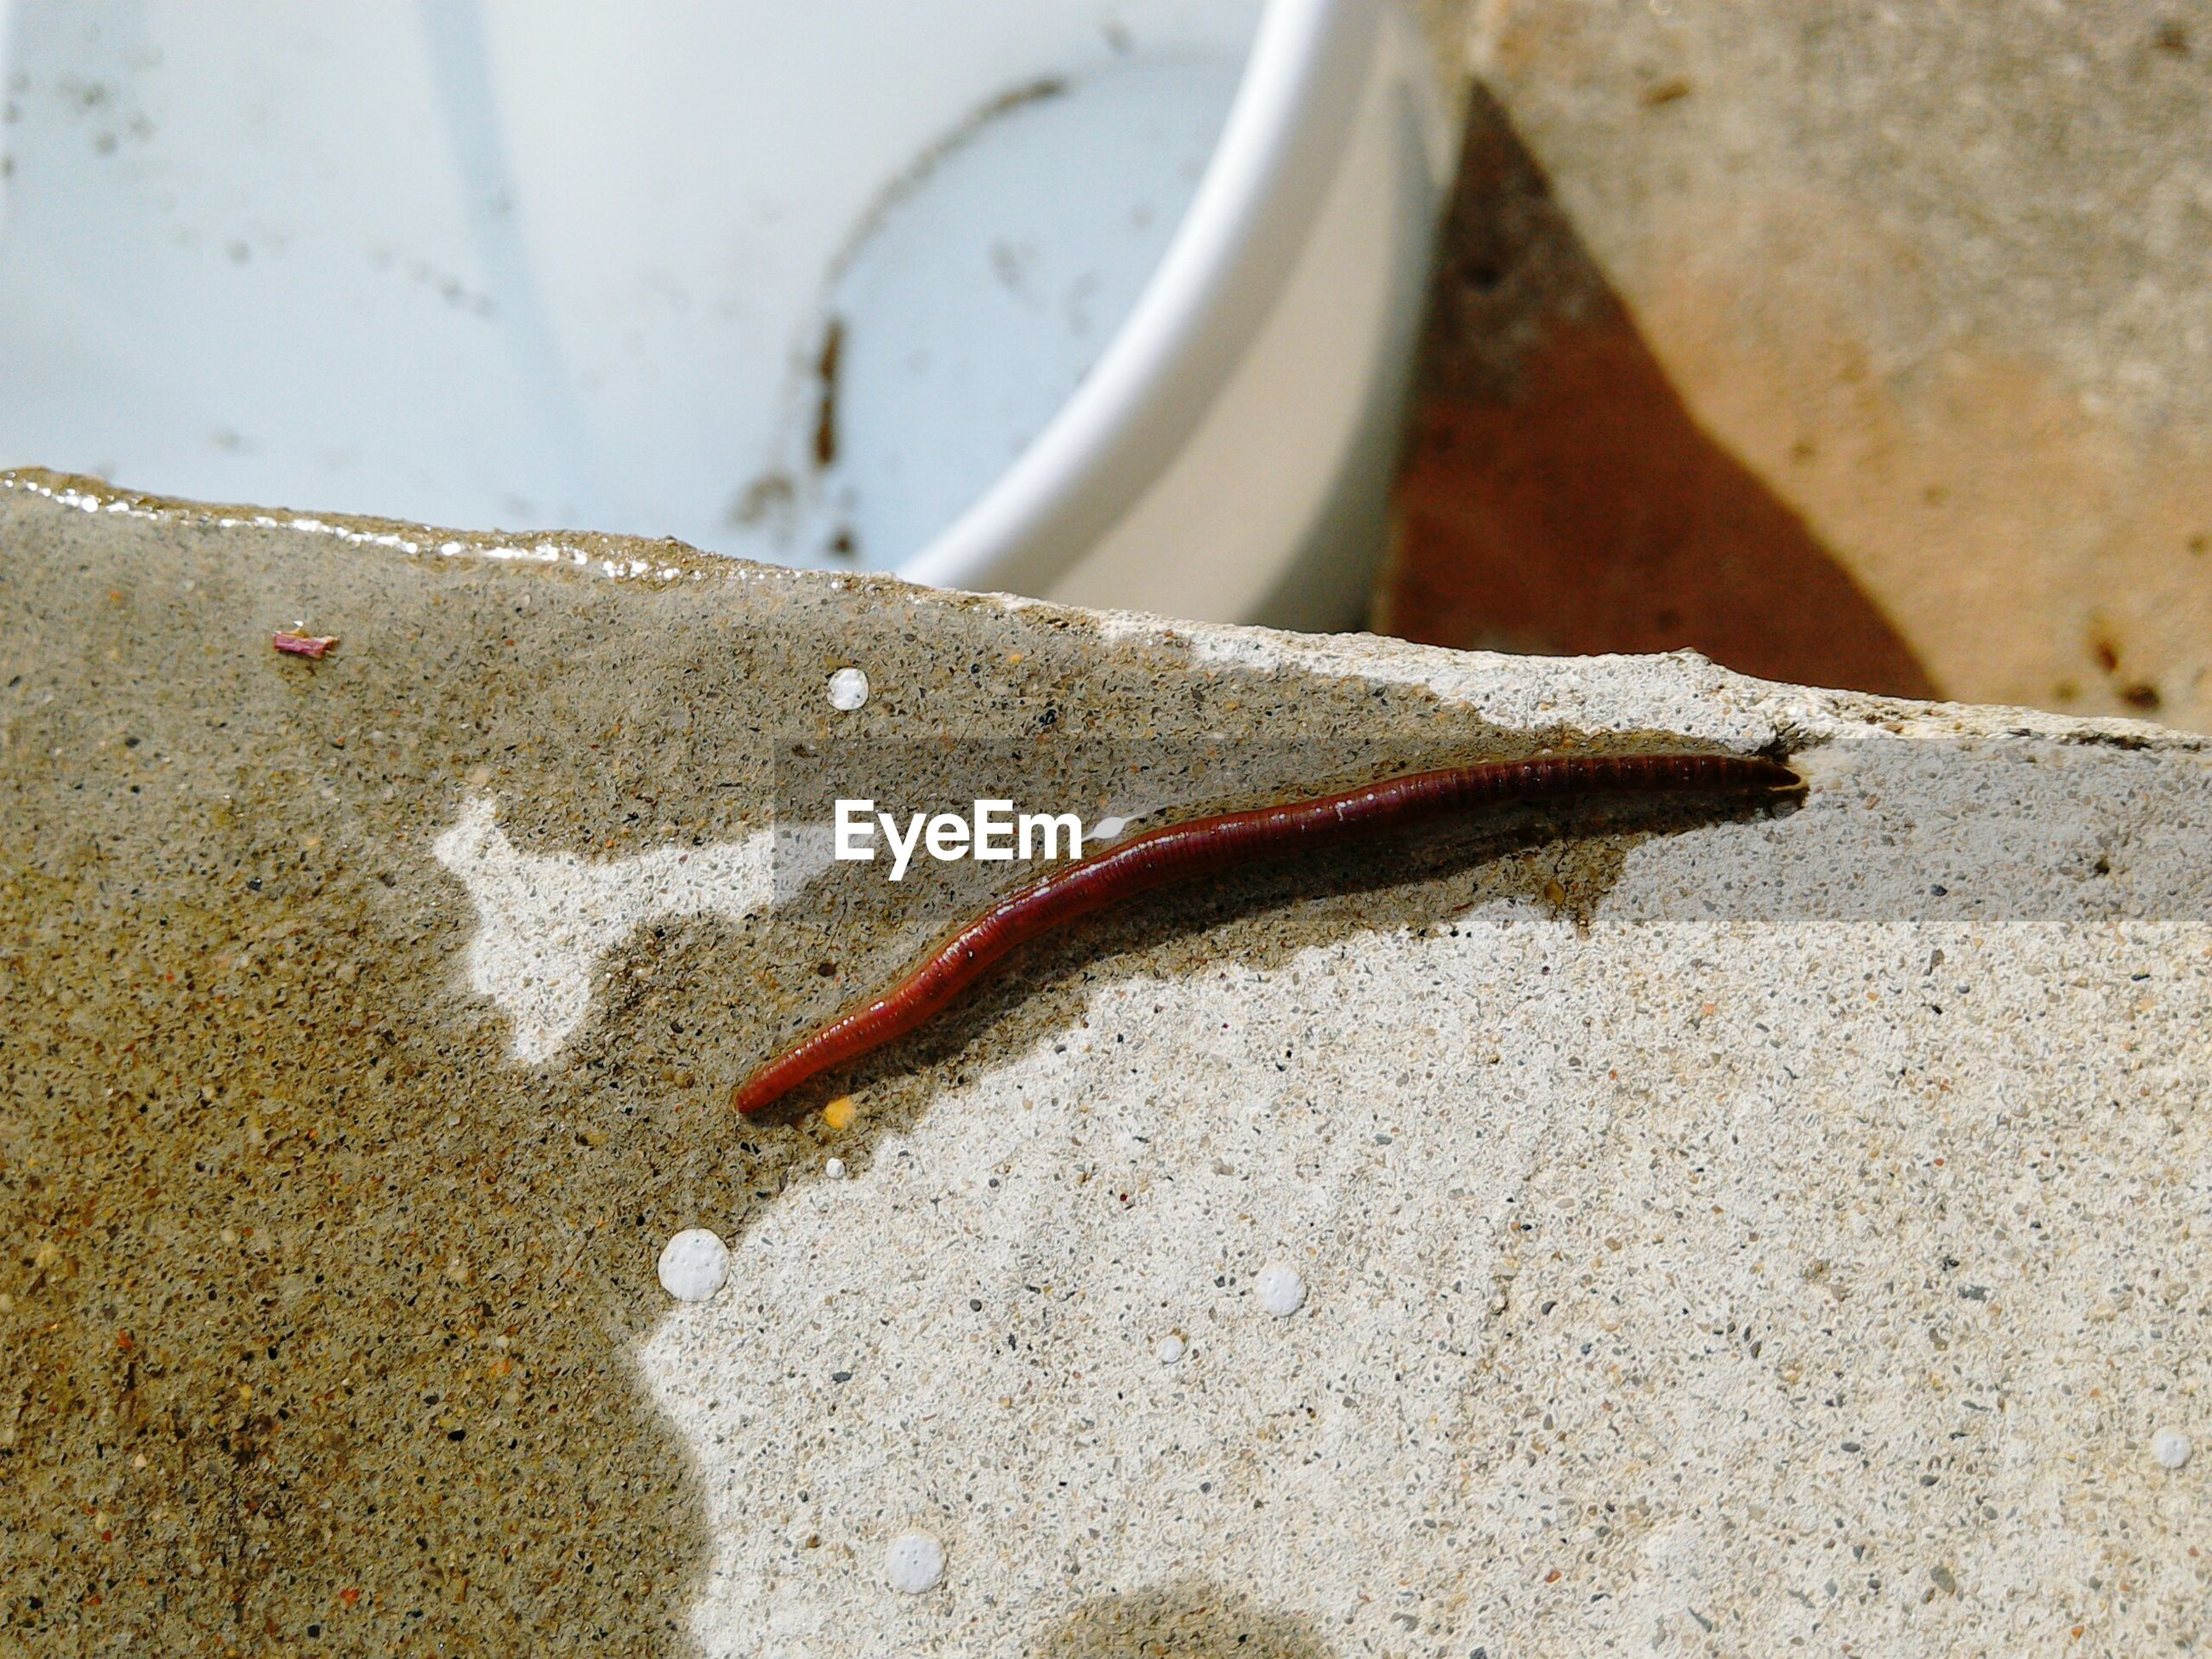 Close-up of earthworm on retaining wall